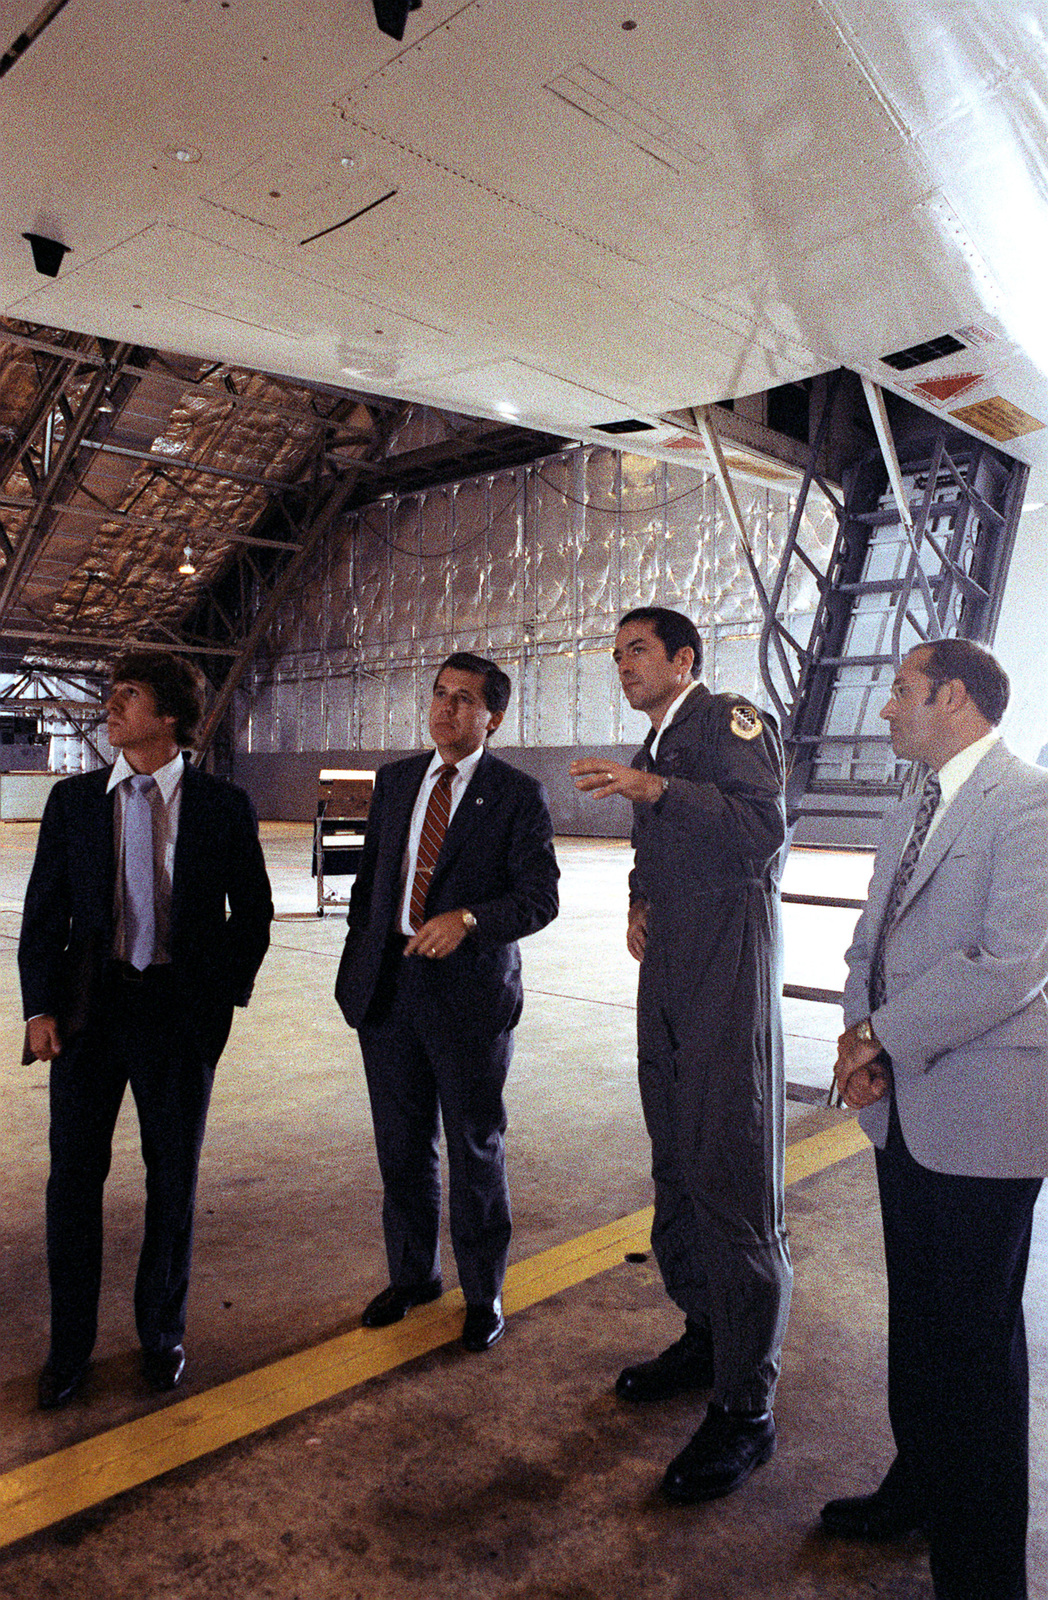 LCOL Leroy Schroeder, B-1 bomber chief test pilot, explains the features of the B-1 aircraft to Rep. Denny Smith, R-Oregon, center left, and two members of his staff. They are standing under the front of the aircraft, near the exit ladder